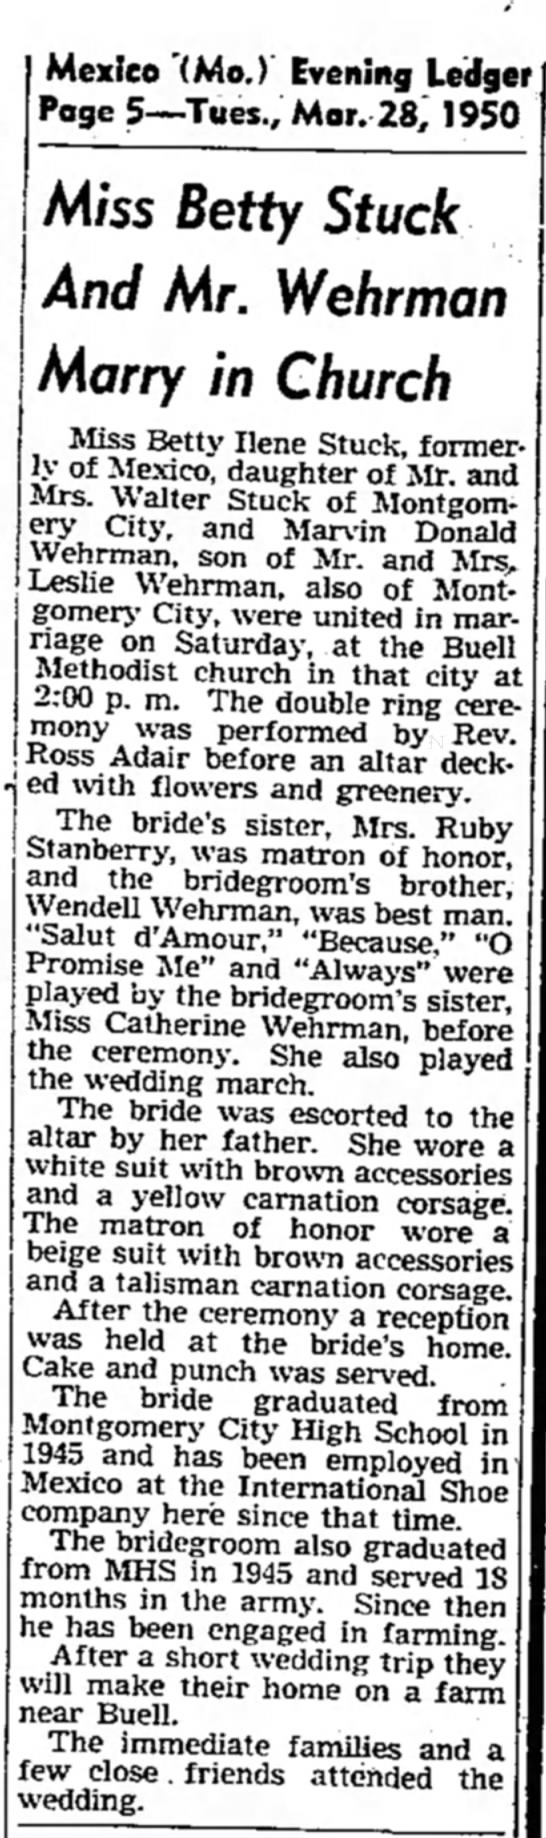 Miss Betty Stuck And Mr. Wehrman Marry in Church -